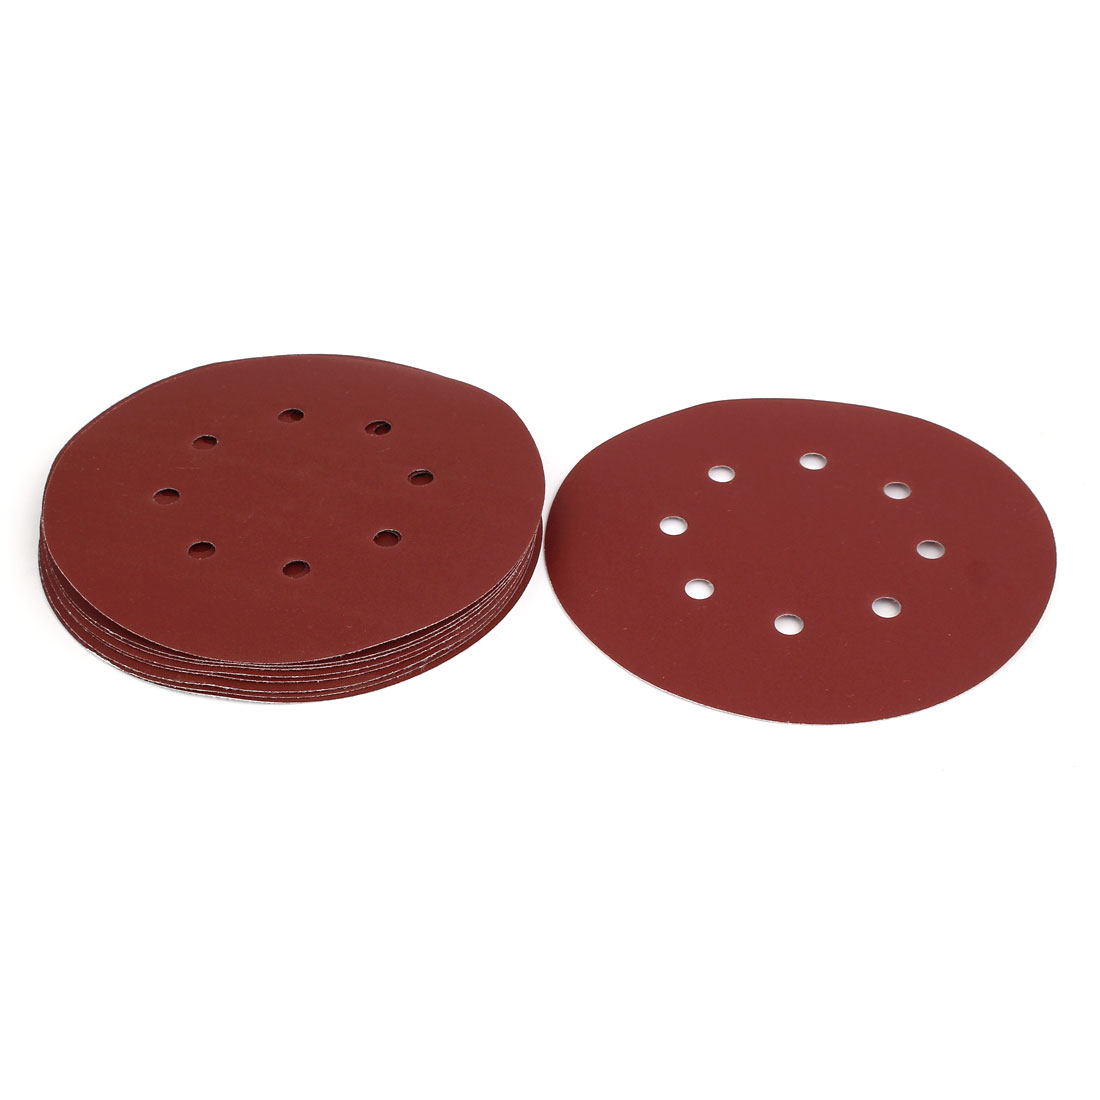 "400 Grit 8 Hole 7"" Diameter Sandpaper Hook Loop Sanding Disc 10 Pcs"